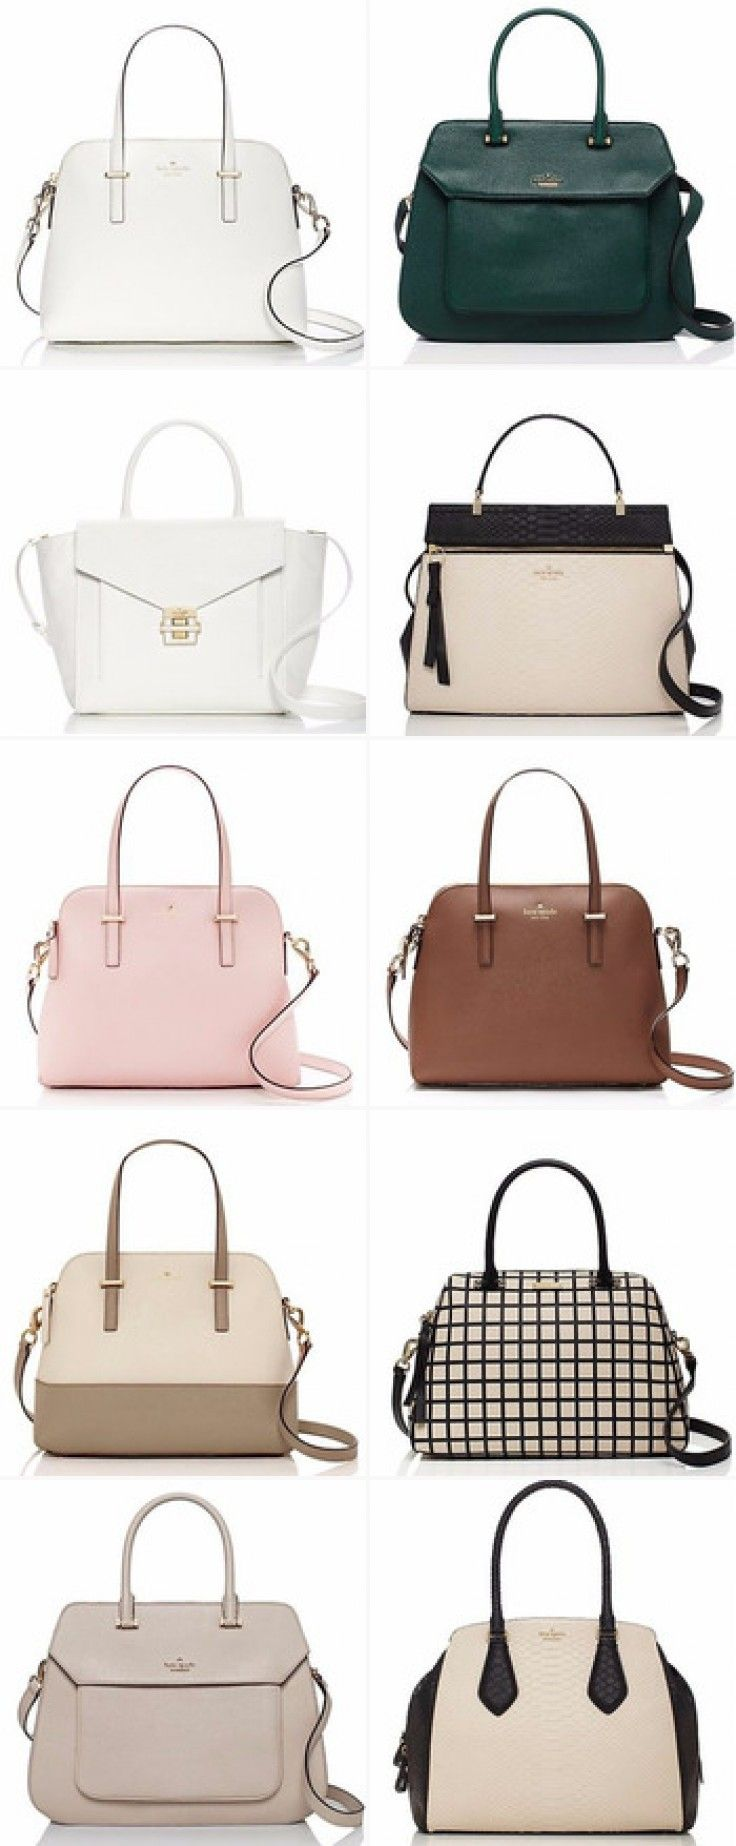 My Picks: favorite kate spade satchels #Fave396267 Women's Handbags & Wallets - http://amzn.to/2iZOQZT